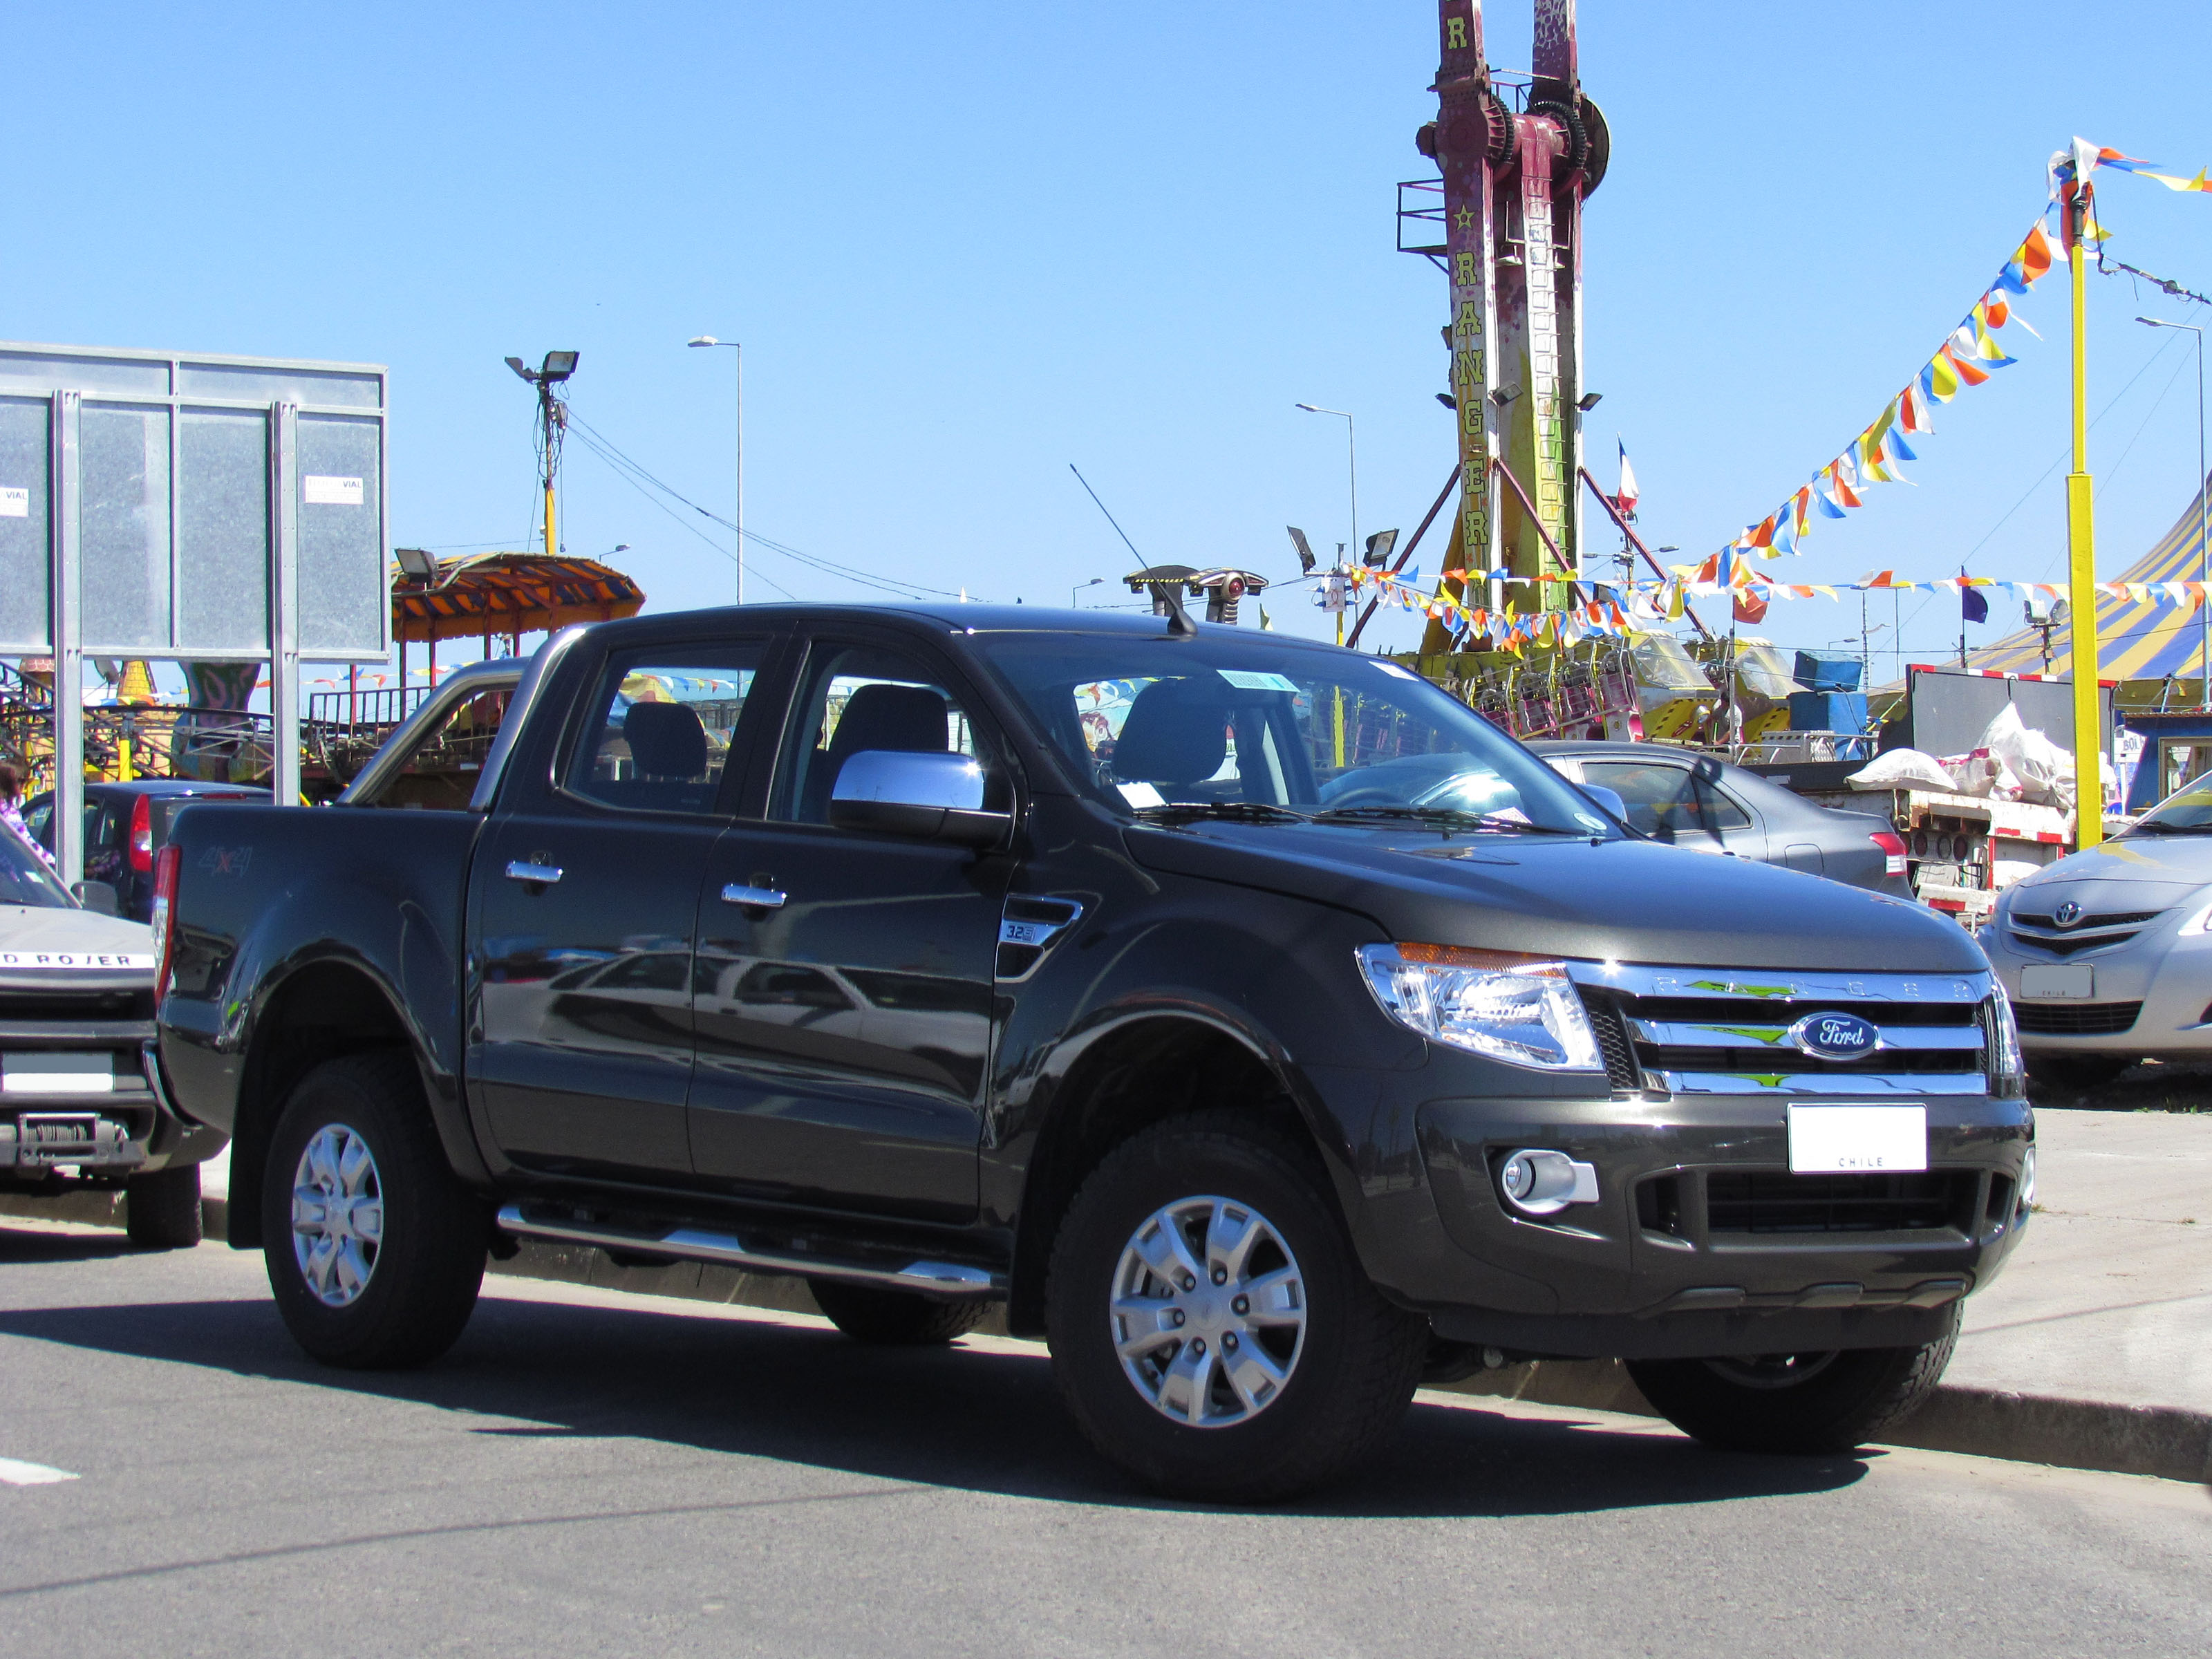 Photos additionally Rhinoman Canopies further 59 Ford Ranger Raptor Aftermarket Kit Debuts In Bangkok furthermore 52 Nouvel Equipement Sa Chouette G 2013 additionally 2007 Ford Fusion Trims C7302. on 2013 ford ranger